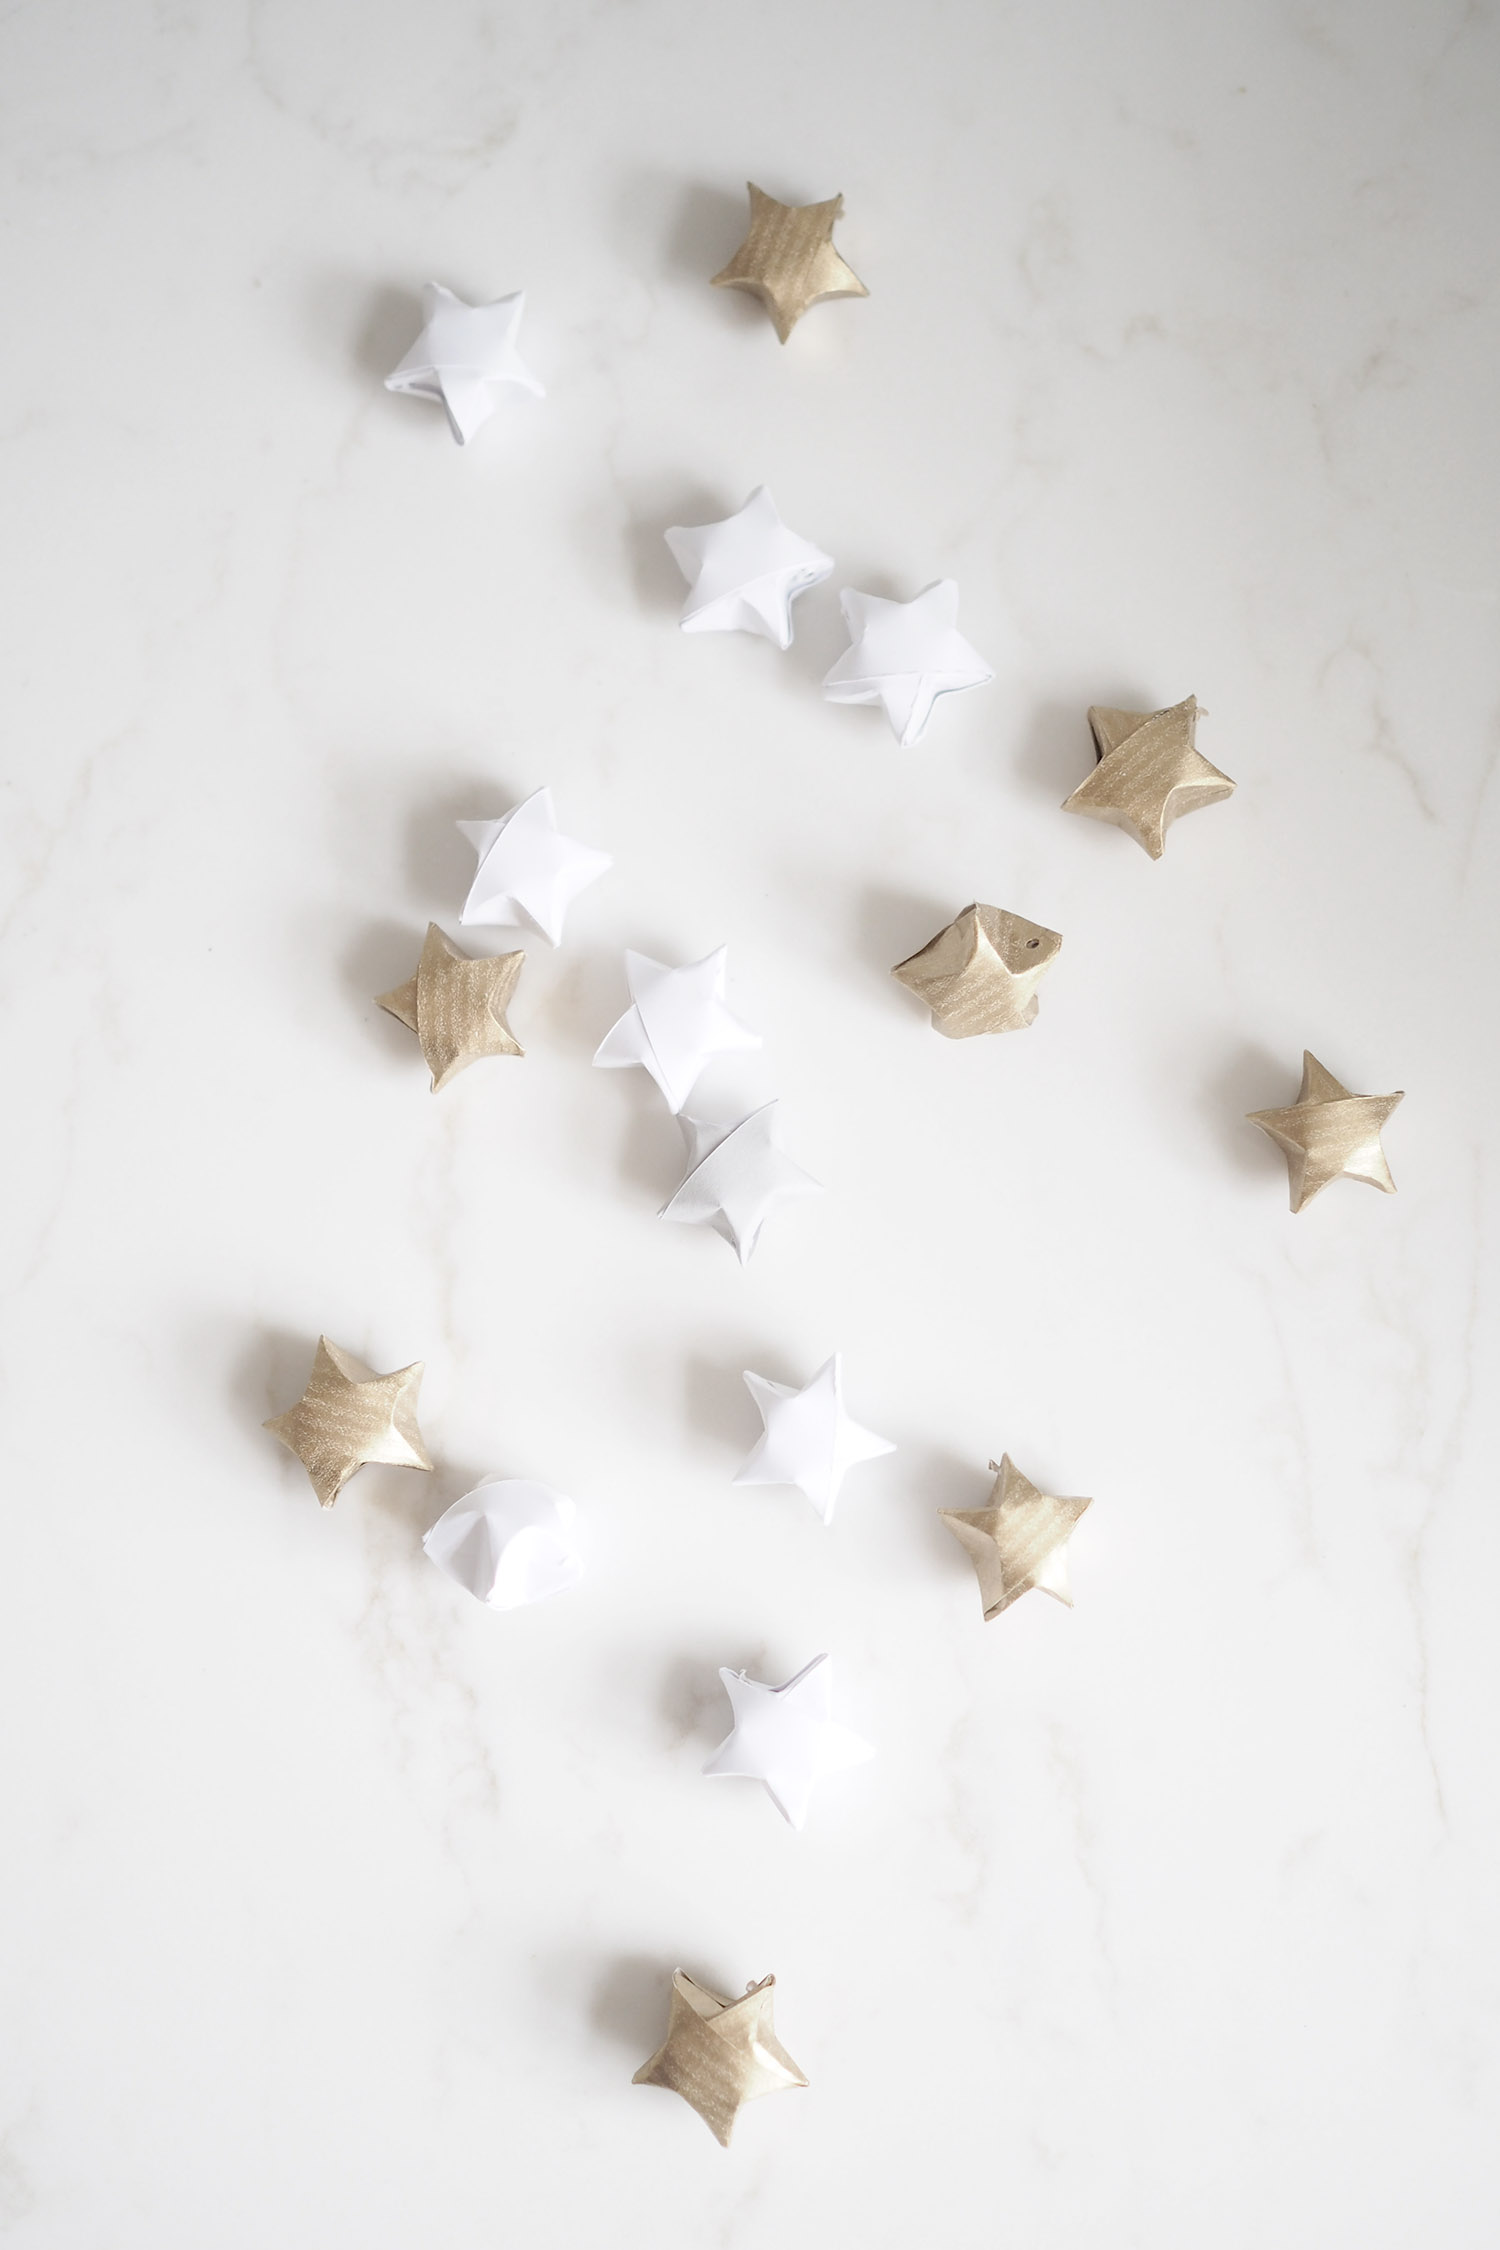 C and the city - How to make DIY small star christmastree decorations - see how on the blog: http://www.idealista.fi/charandthecity/2016/12/05/nain-teet-tahtikoristeet